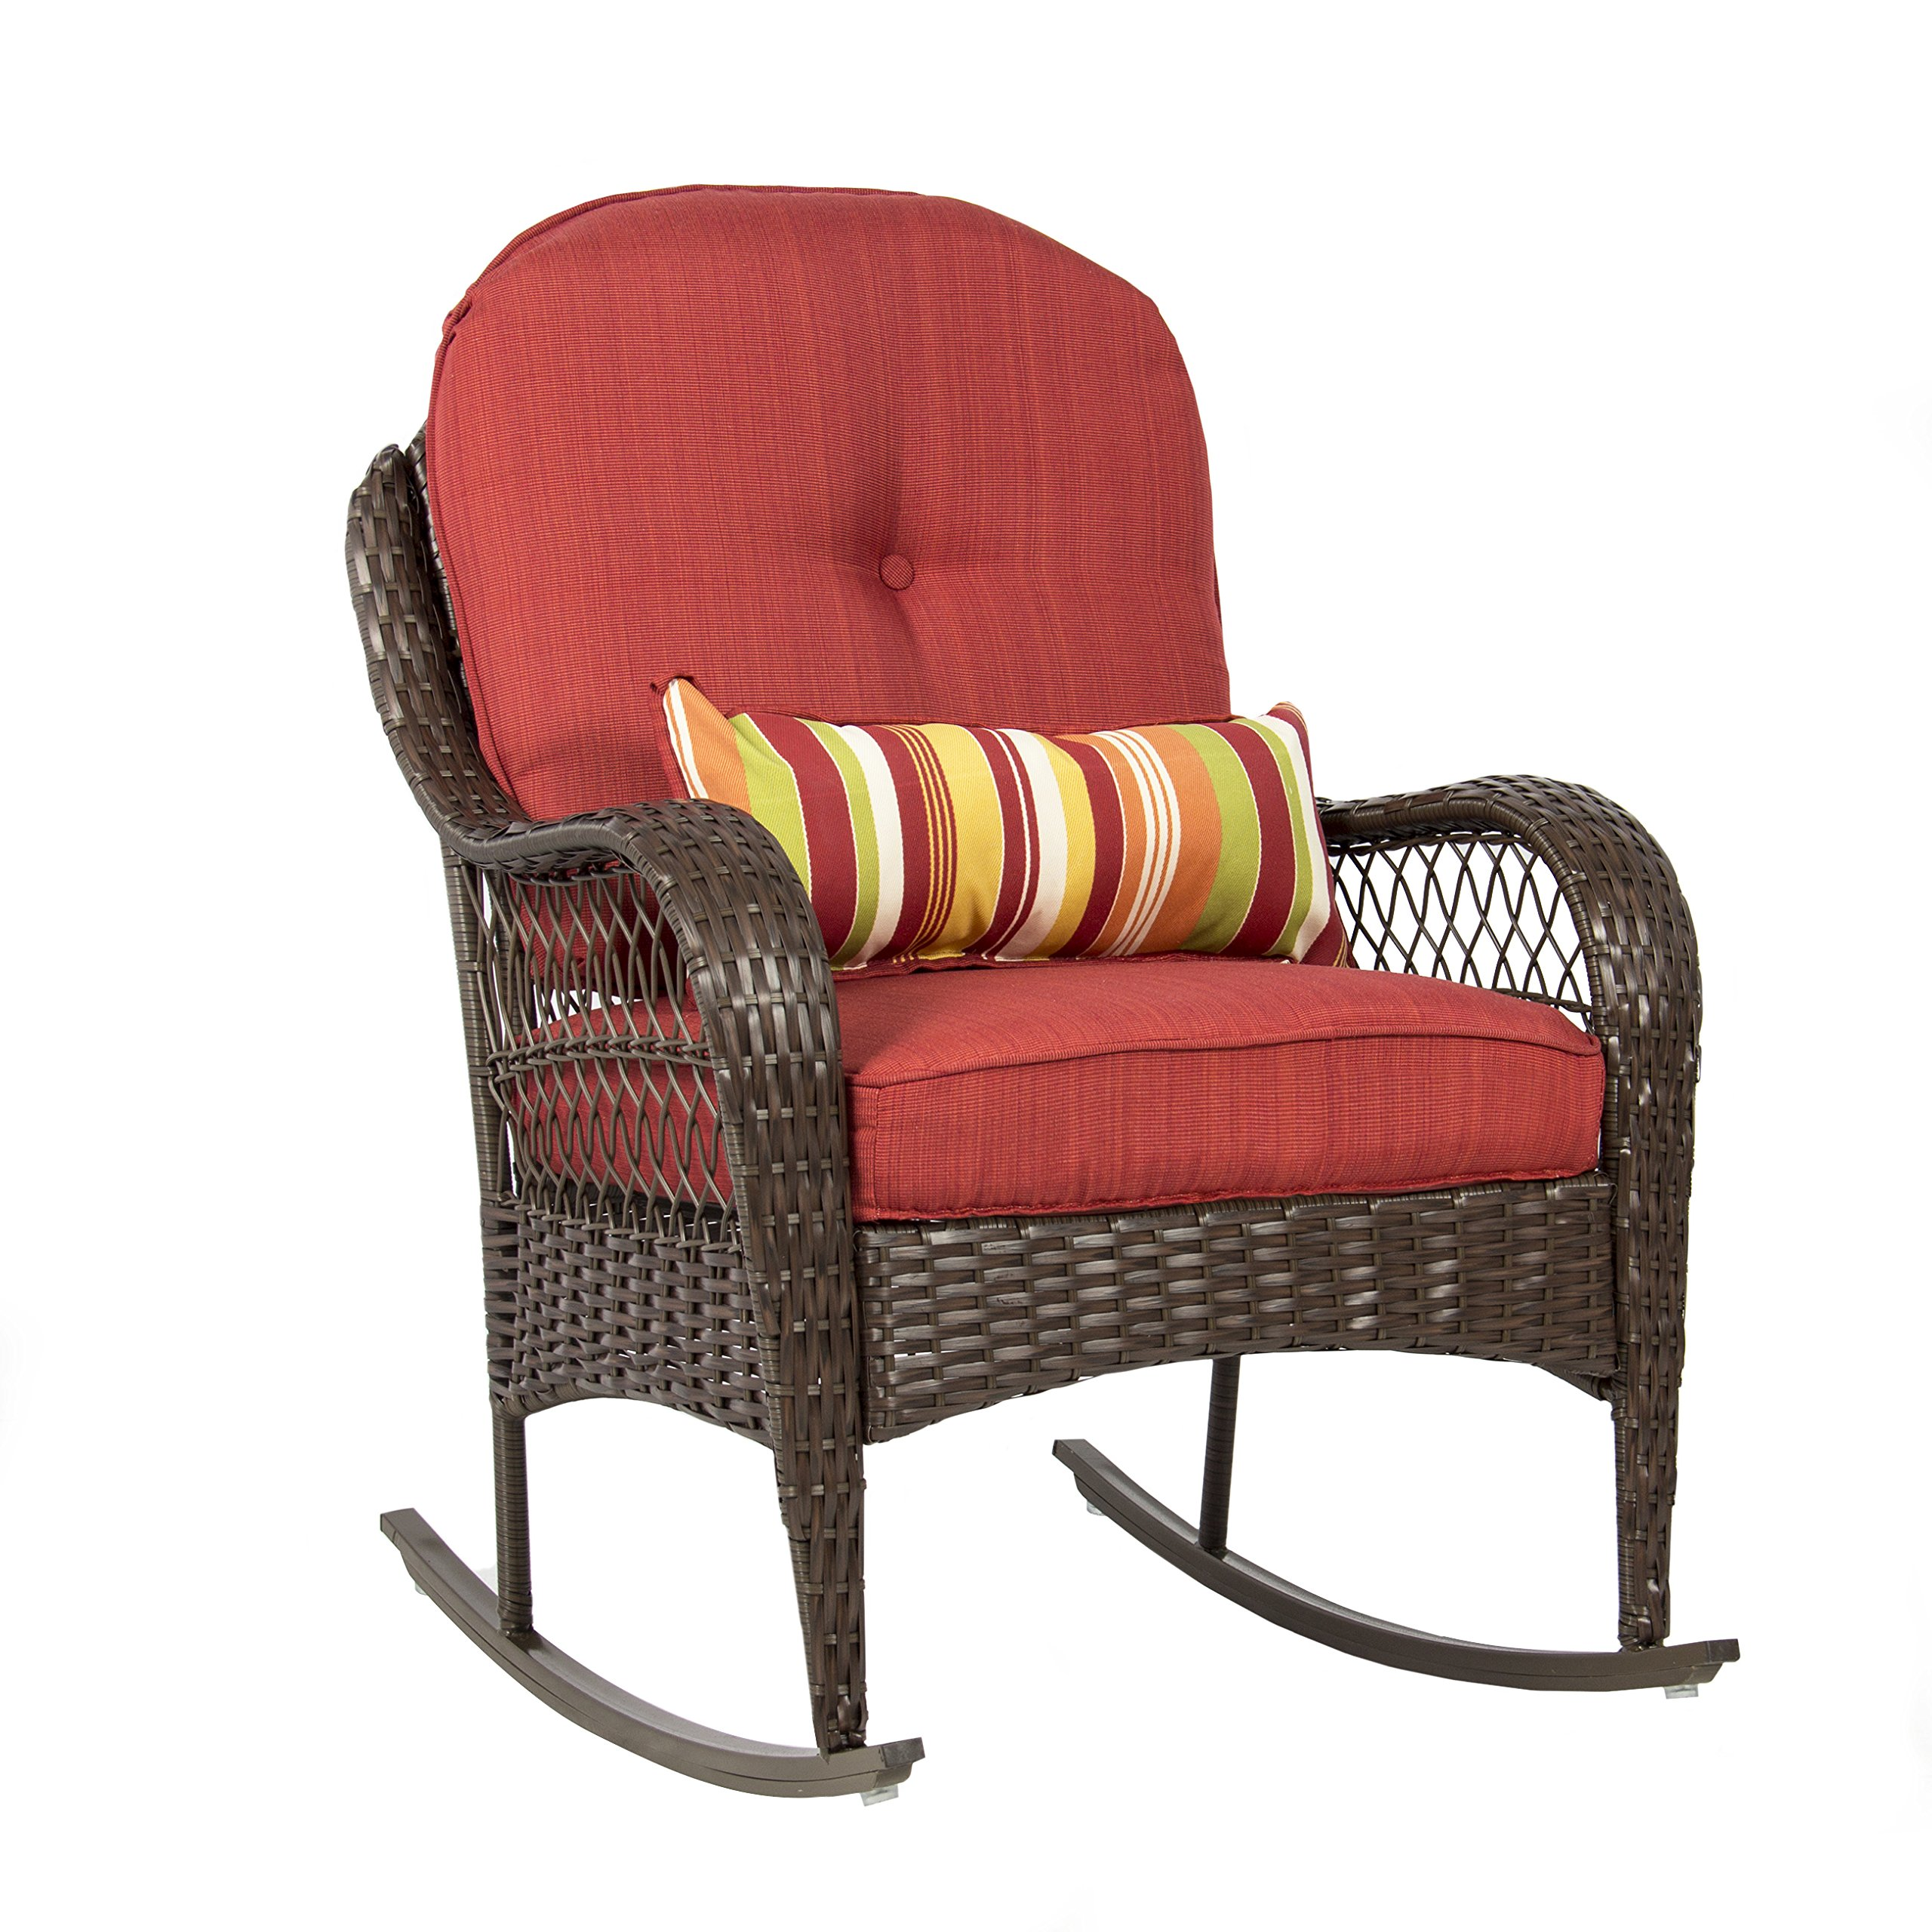 Best ChoiceProducts Wicker Rocking Chair Patio Porch Deck Furniture All Weather Proof with Cushions by Best Choice Products (Image #2)